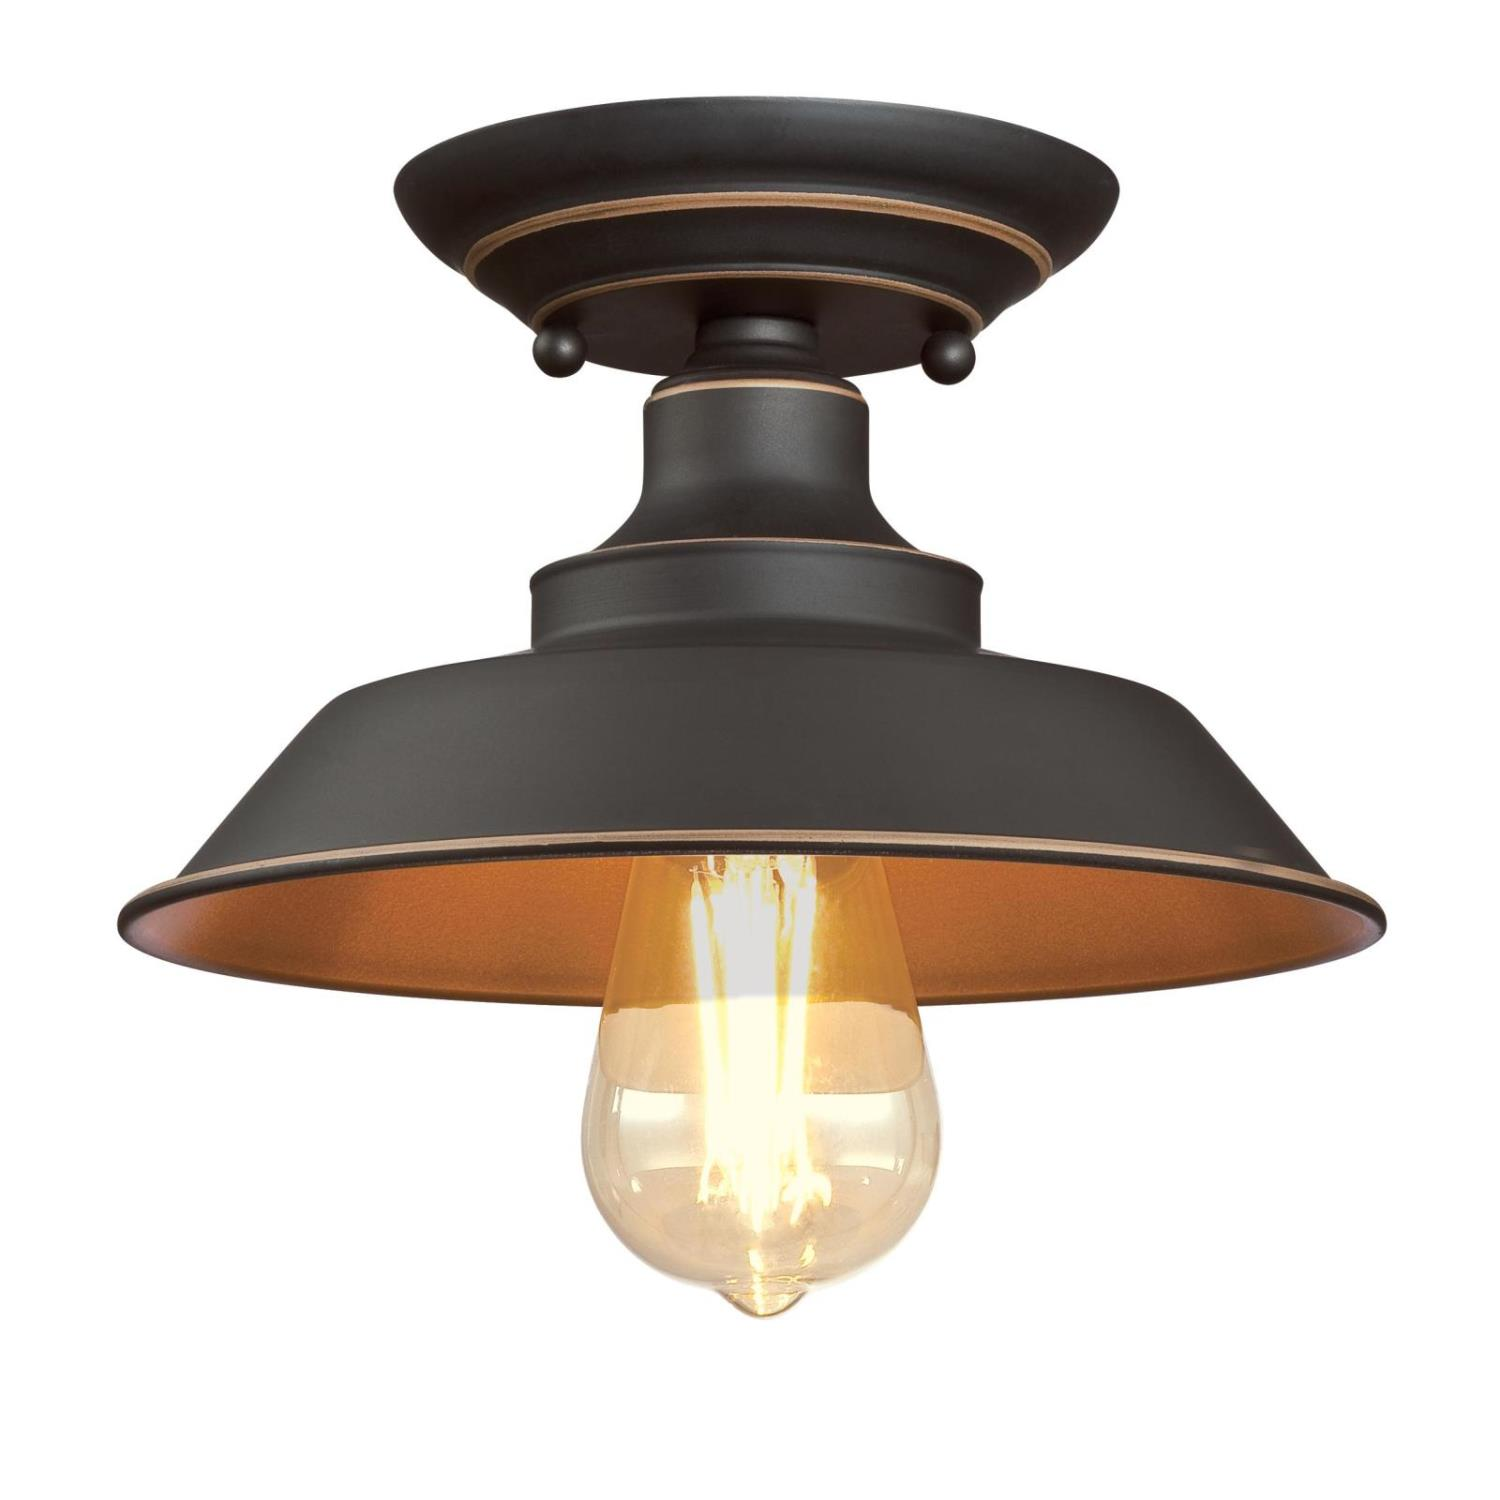 9 in. 1 Light Semi-Flush Oil Rubbed Bronze Finish with Highlights